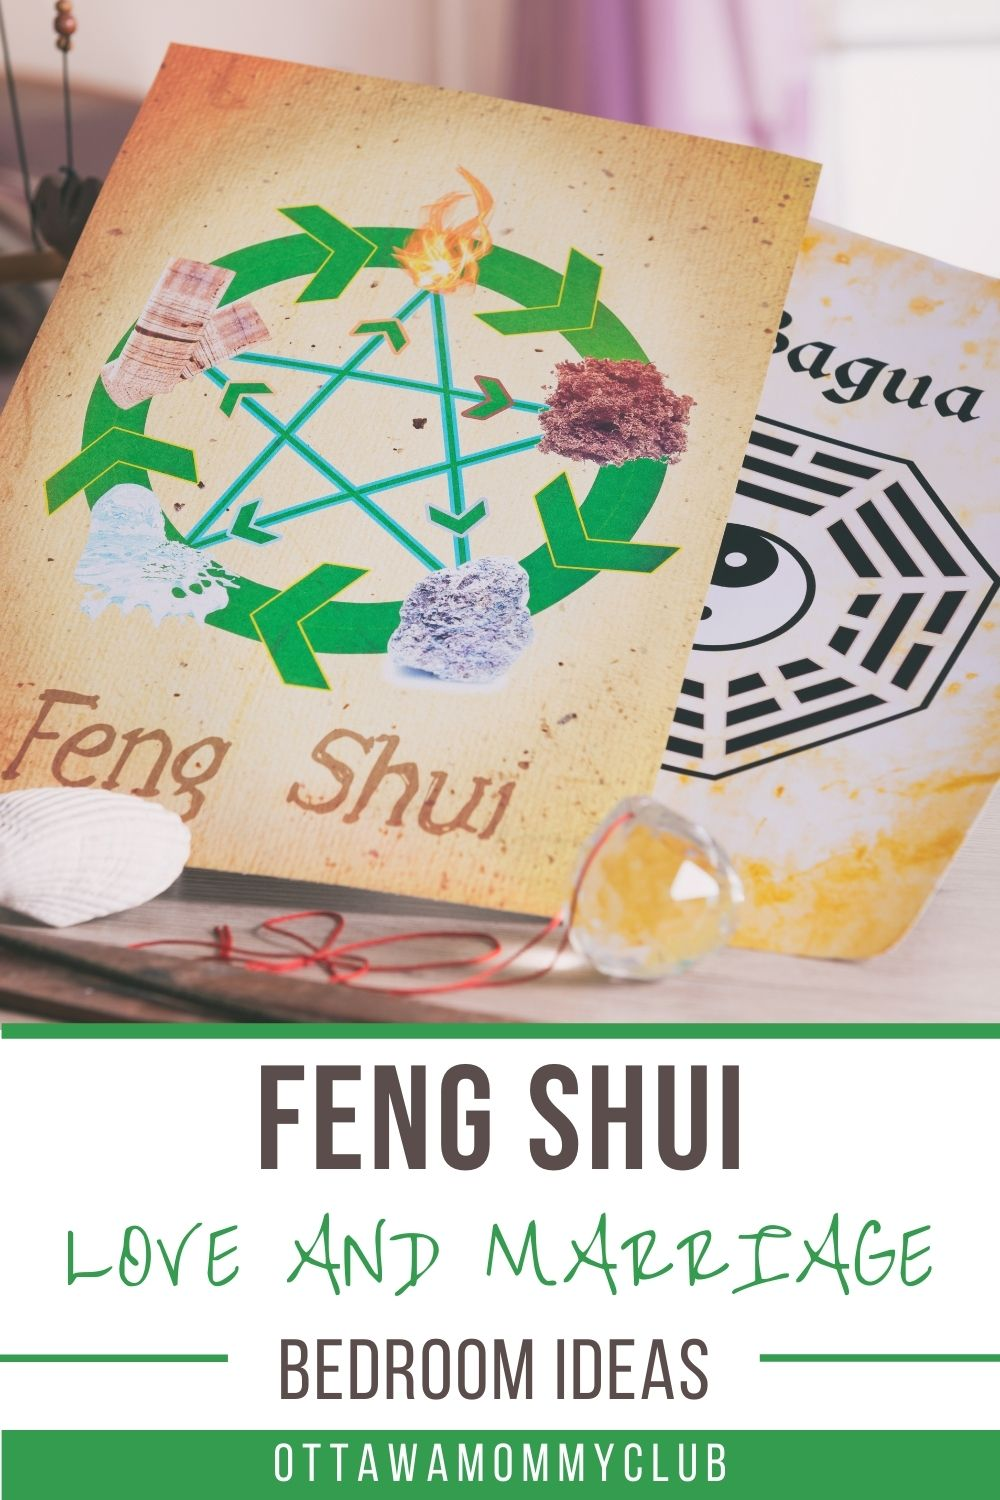 Feng Shui Love and Marriage Bedroom Ideas